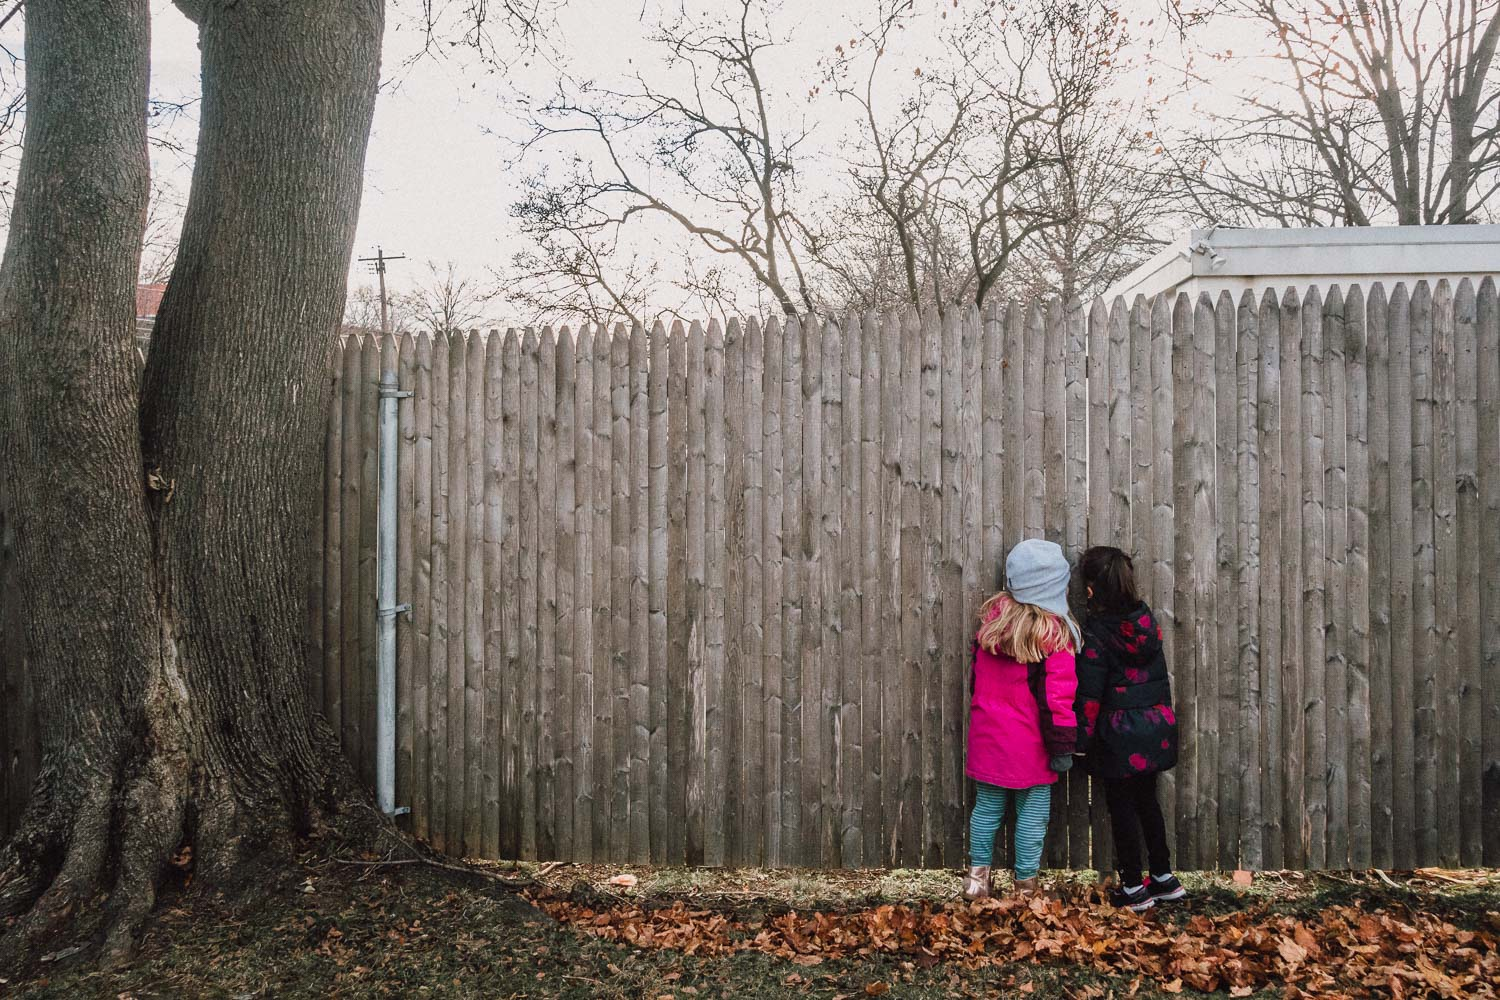 Little girls peeking through a fence.